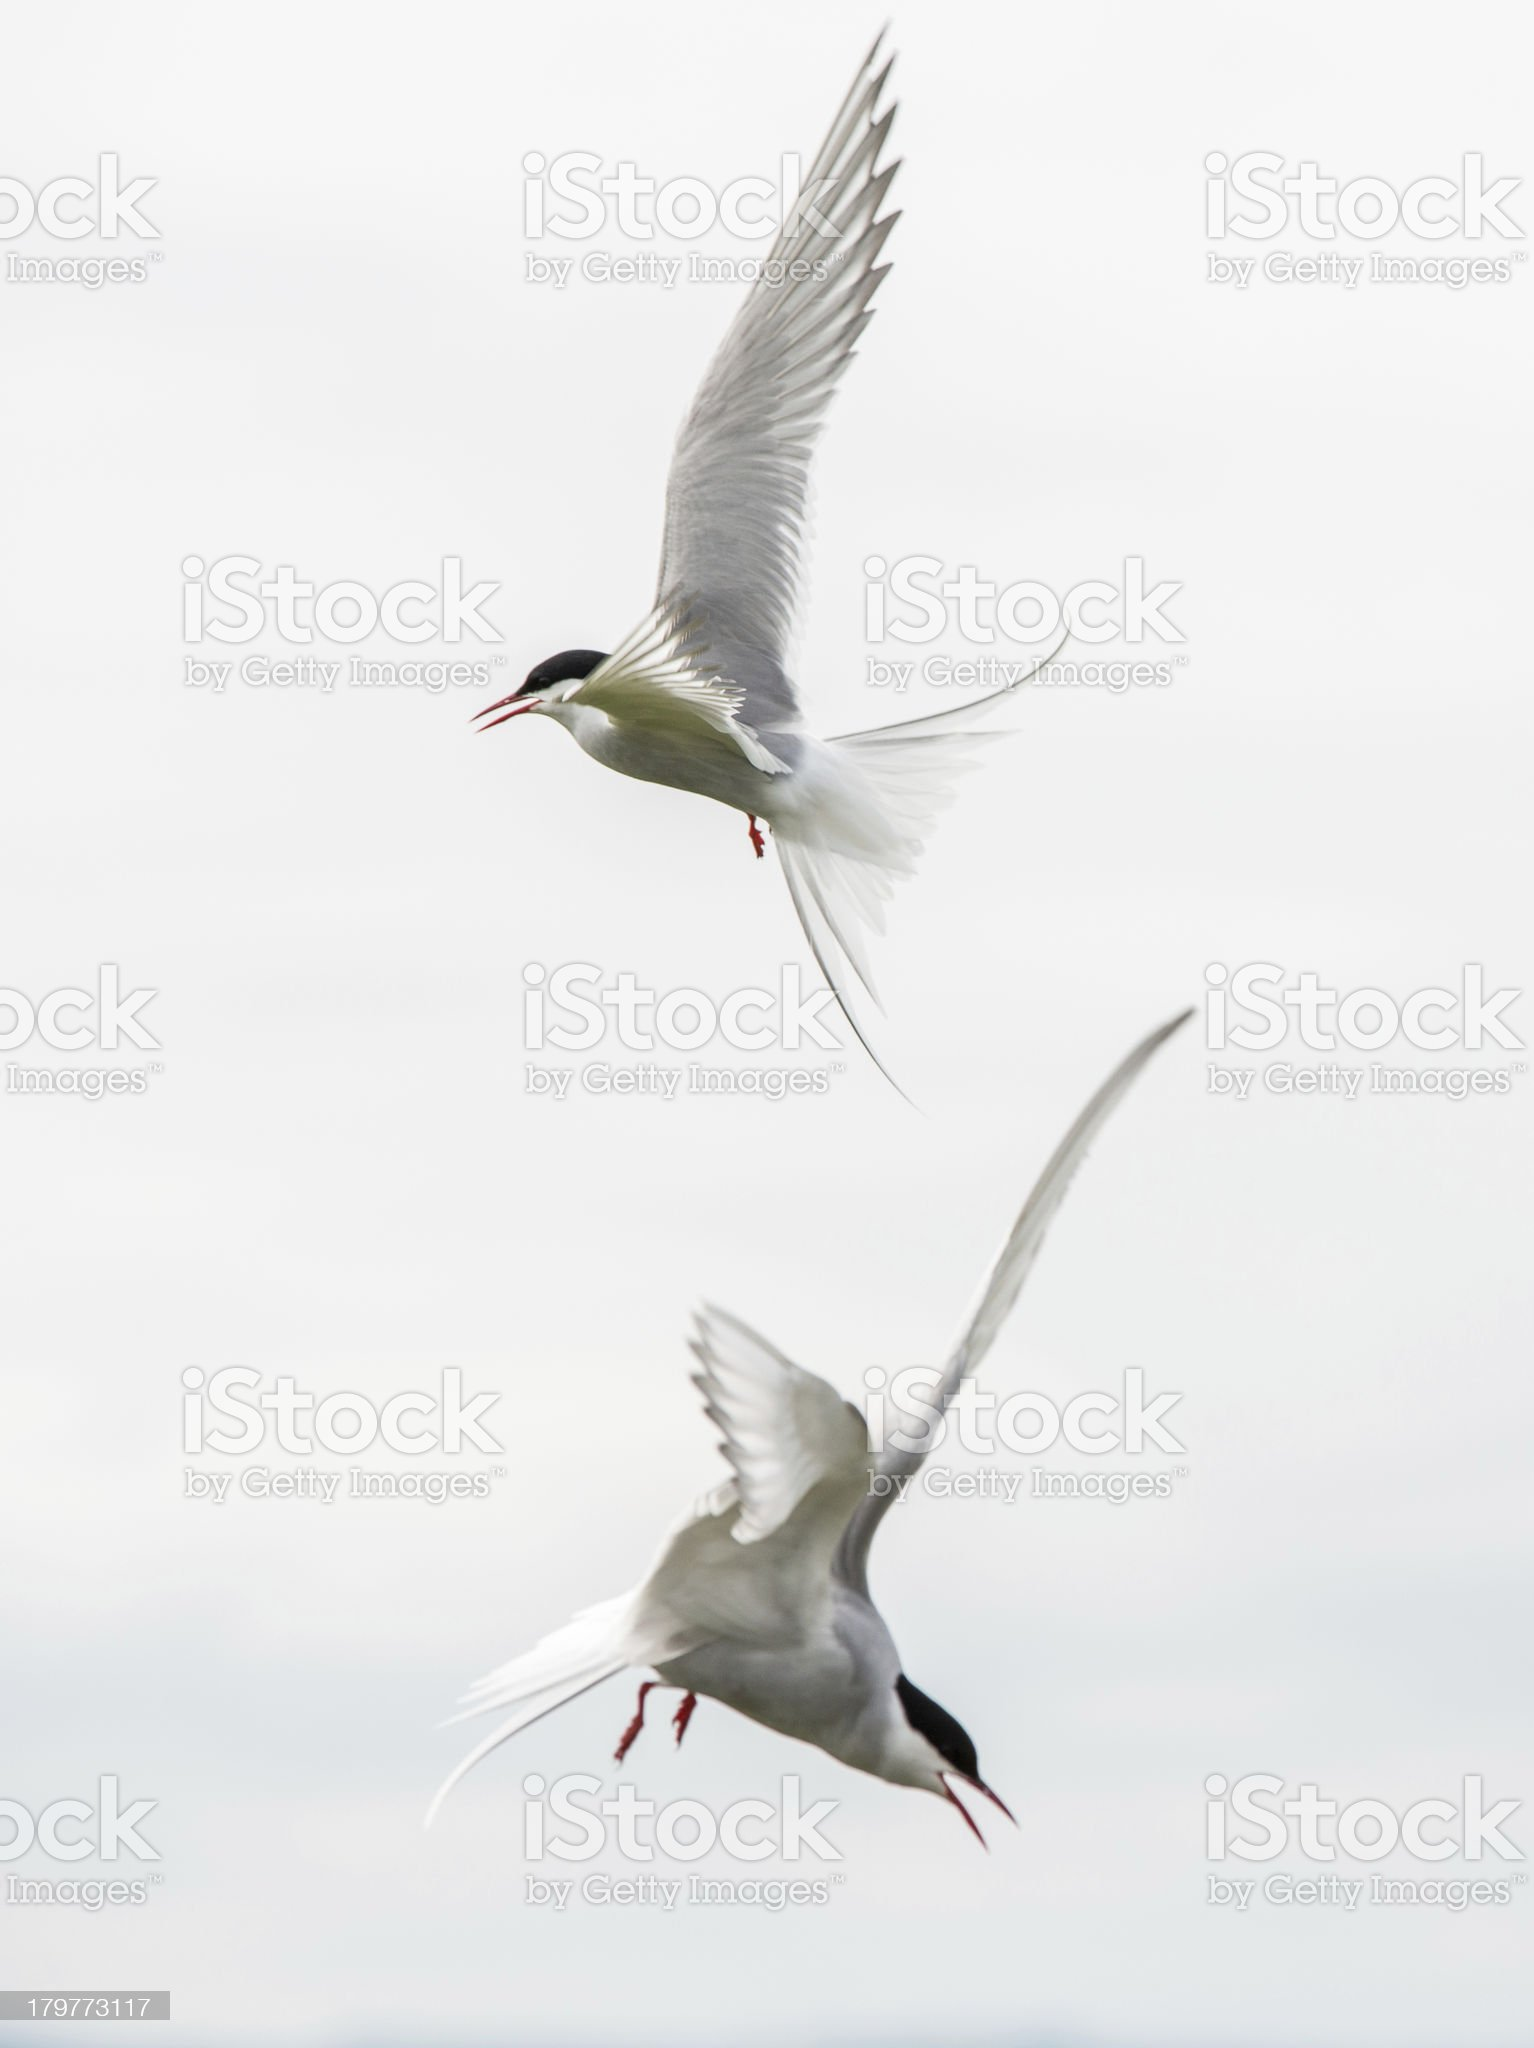 Two arctic terns attacking (Farne Islands, UK) royalty-free stock photo